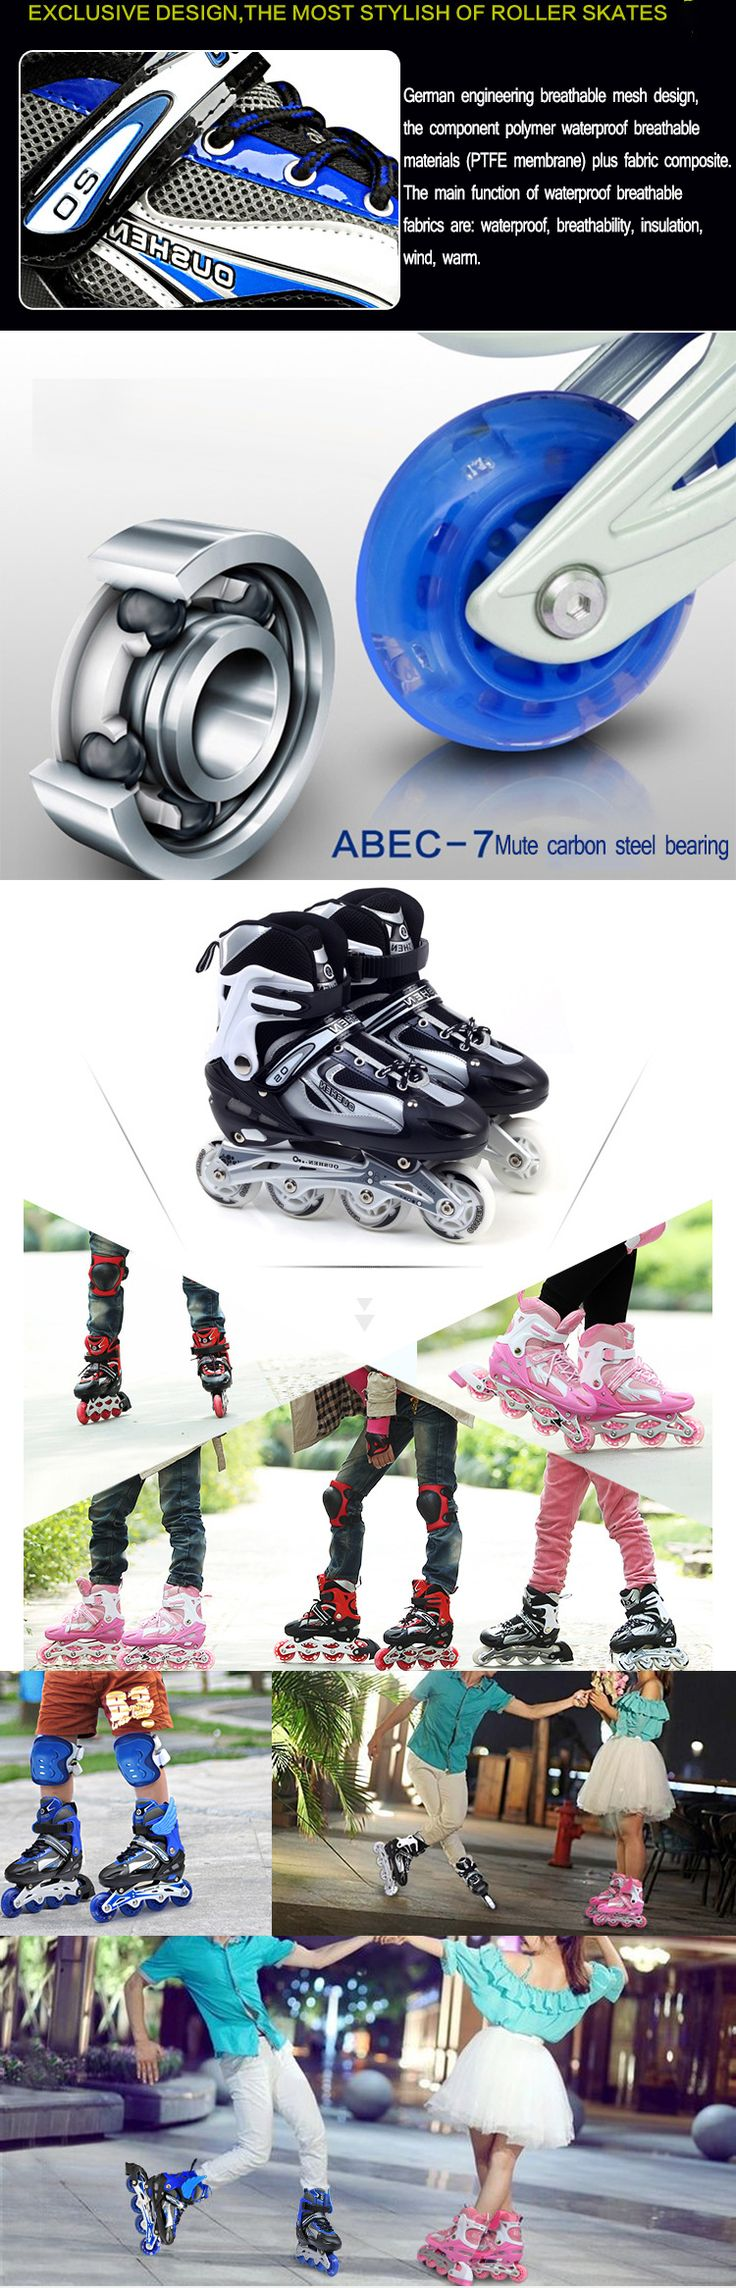 Roller skates to buy in dublin